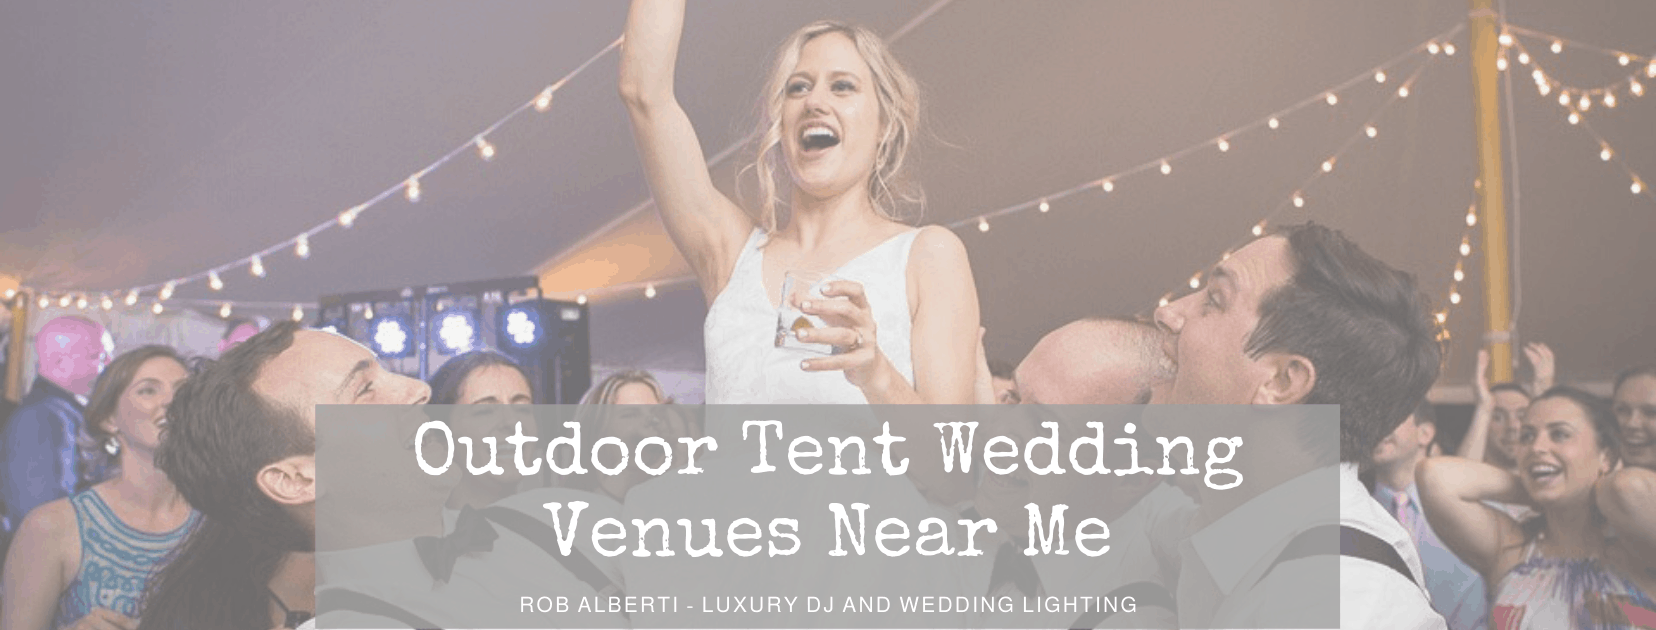 Outdoor Tent Wedding Venues Near Me Finding The Perfect Venue For You